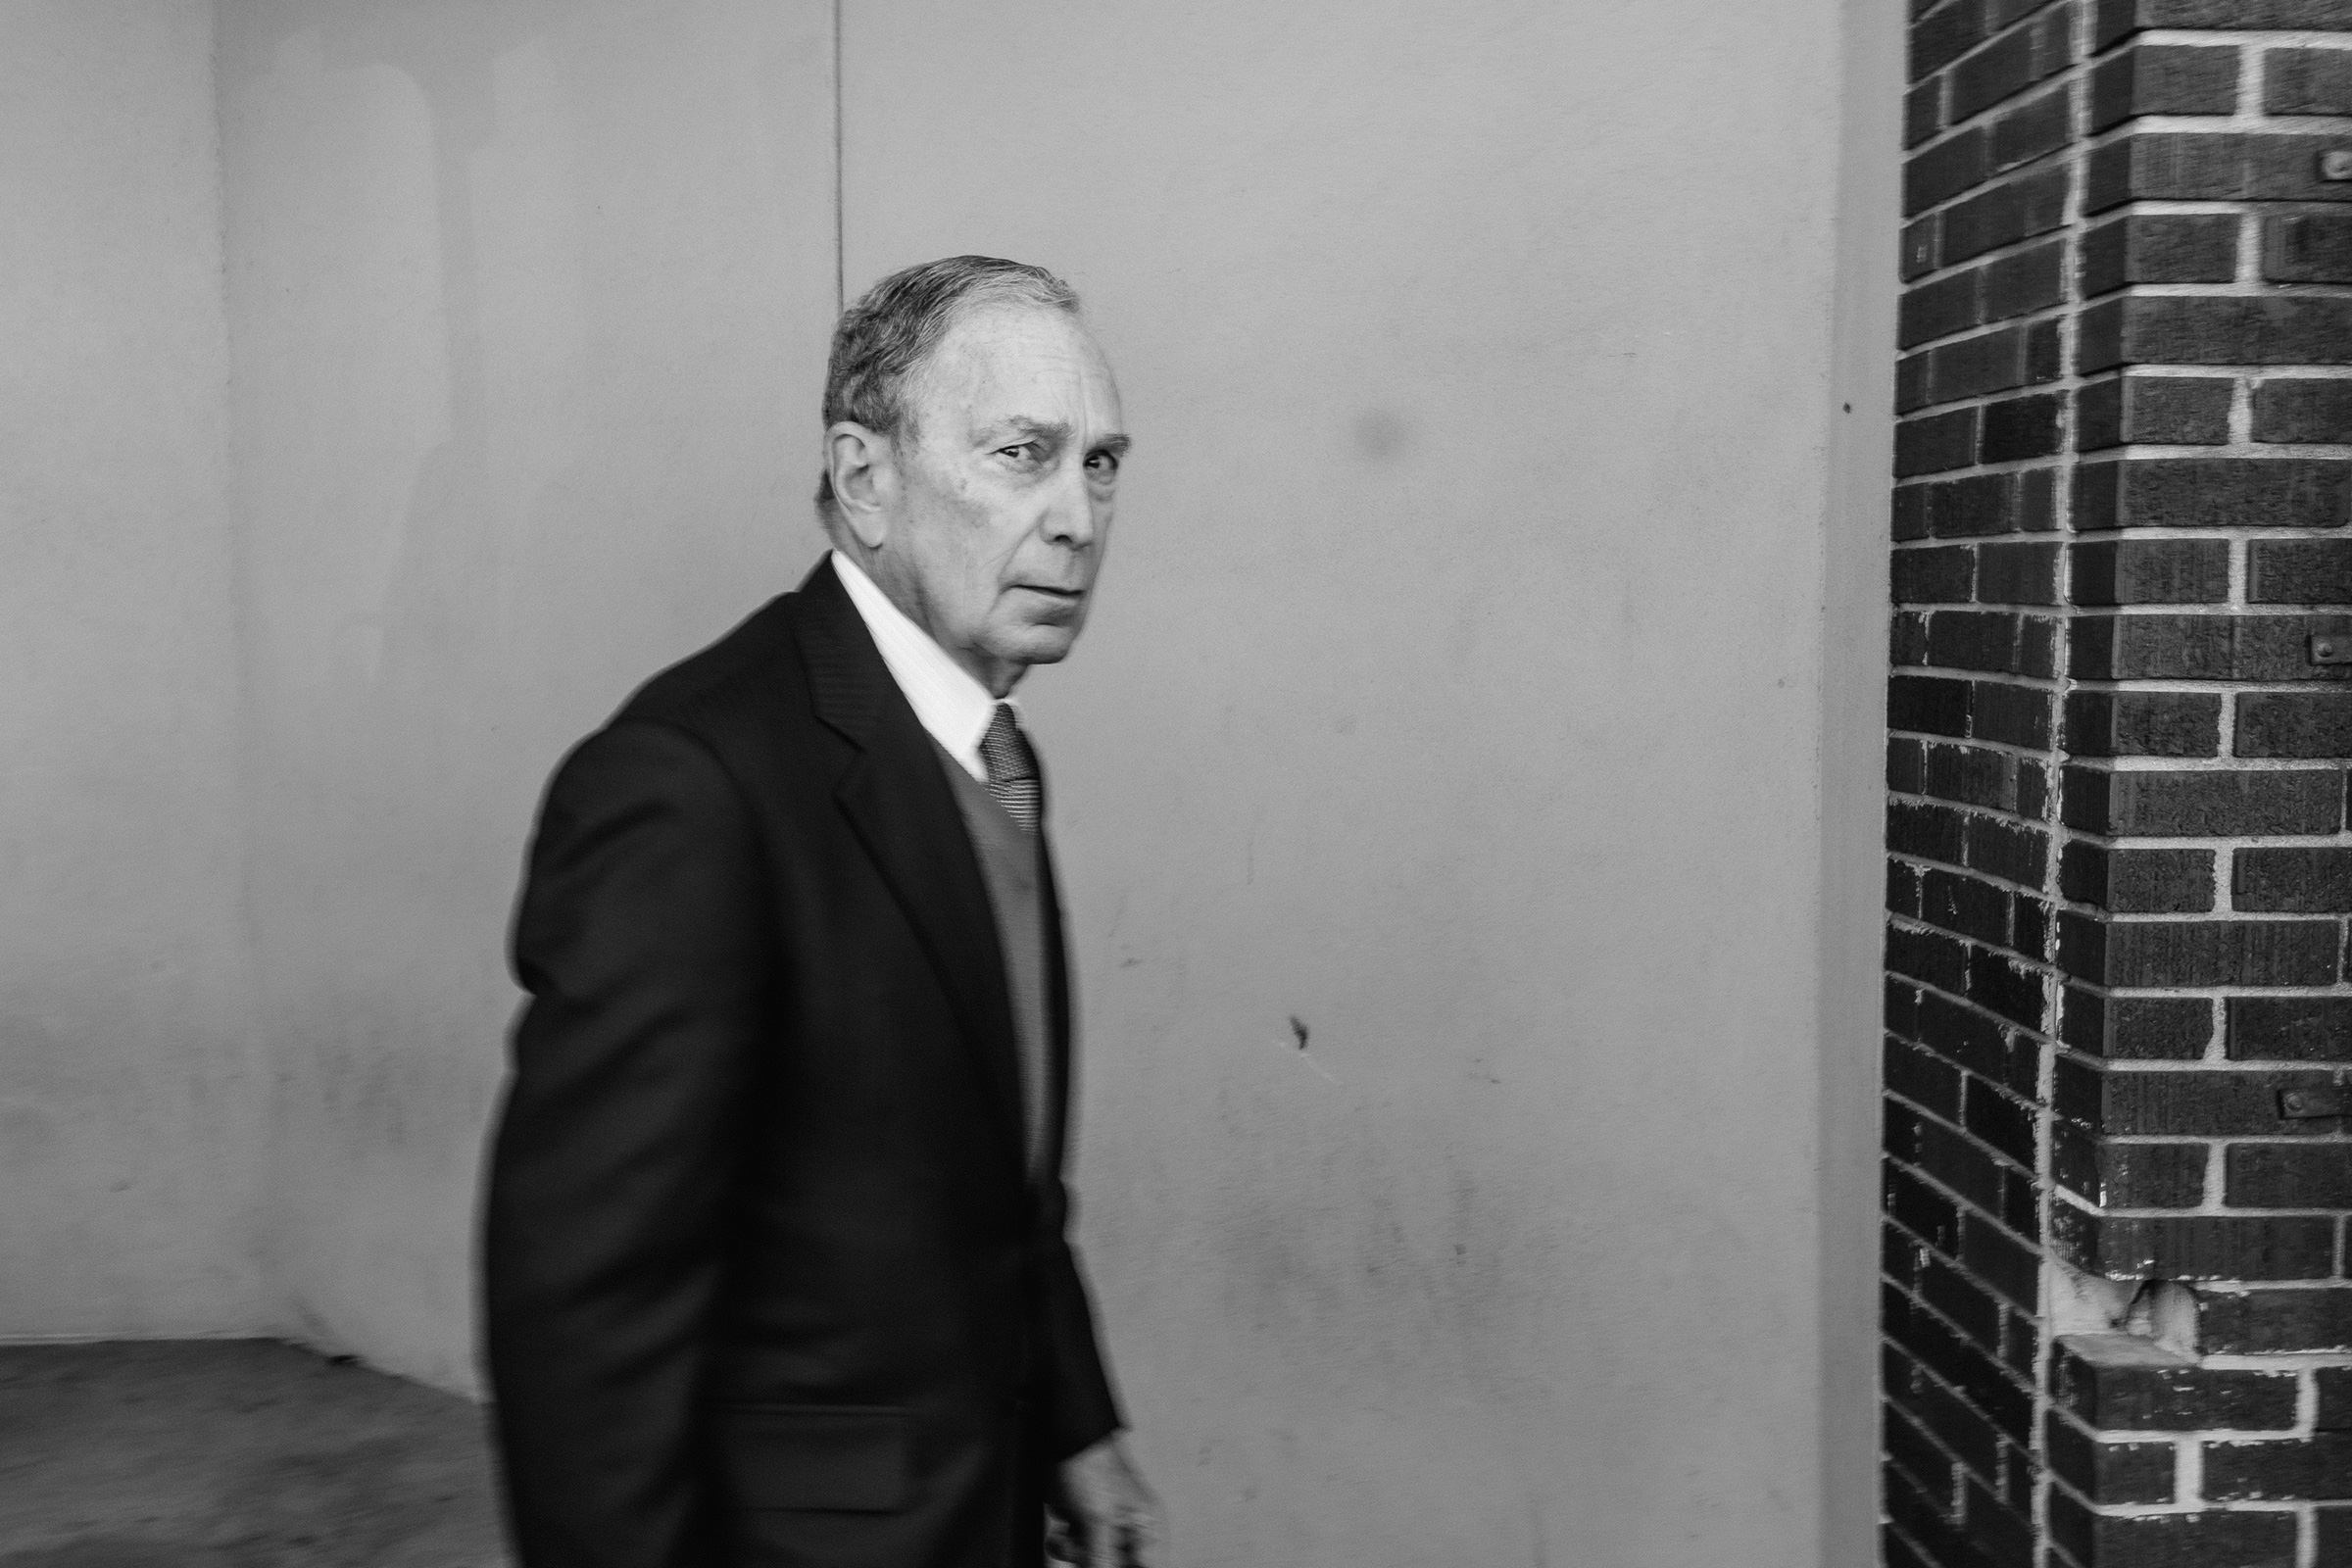 Former New York City Mayor and 2020 presidential candidate Mike Bloomberg leaves a rally in Memphis on Feb. 28.